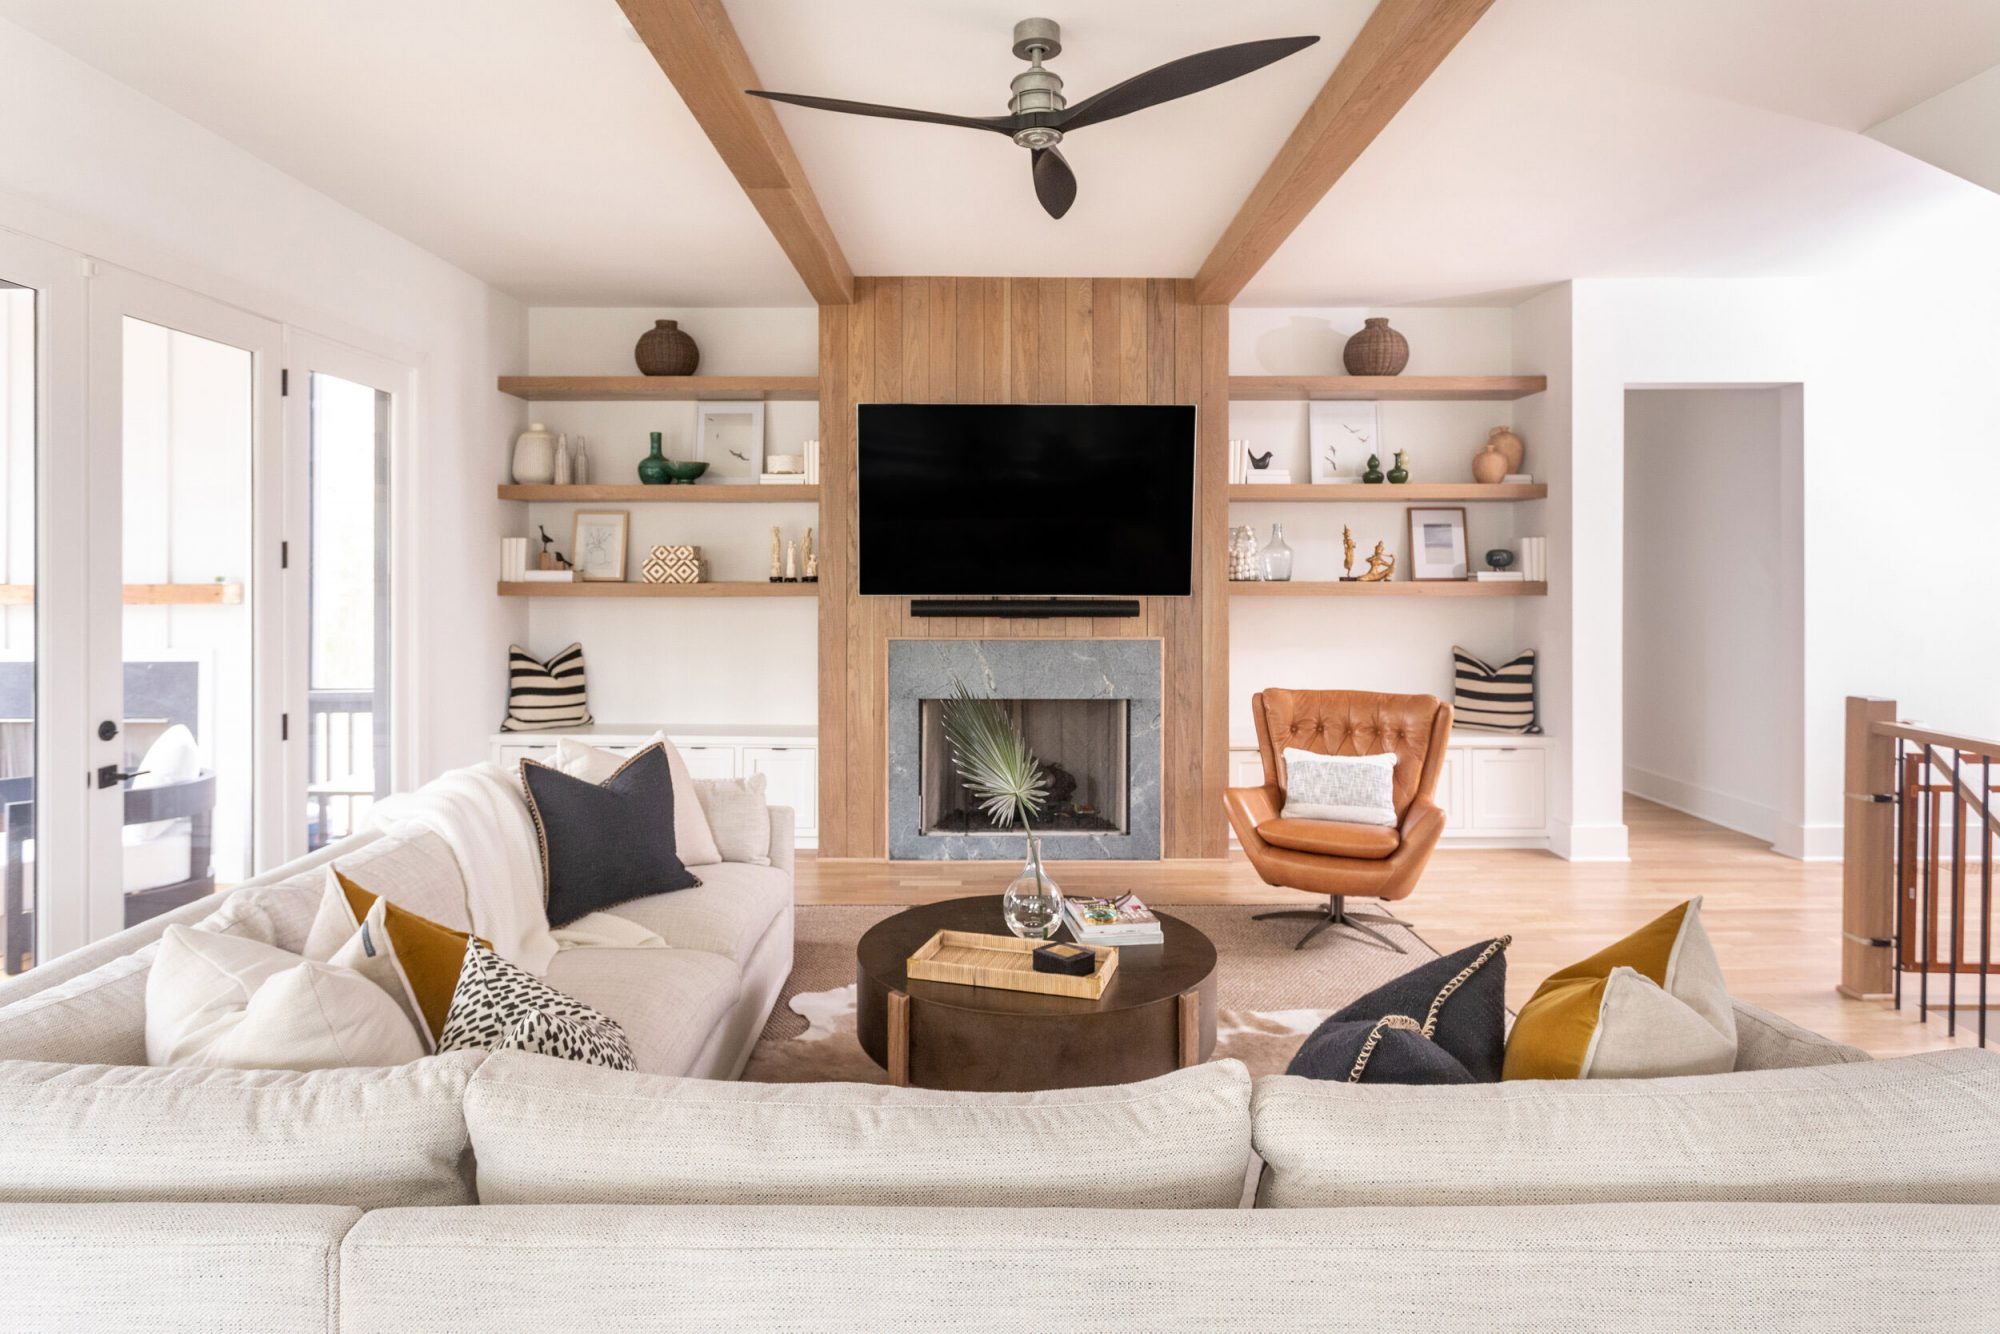 Living Room with Built In Bookshelves and TV Over Fireplace